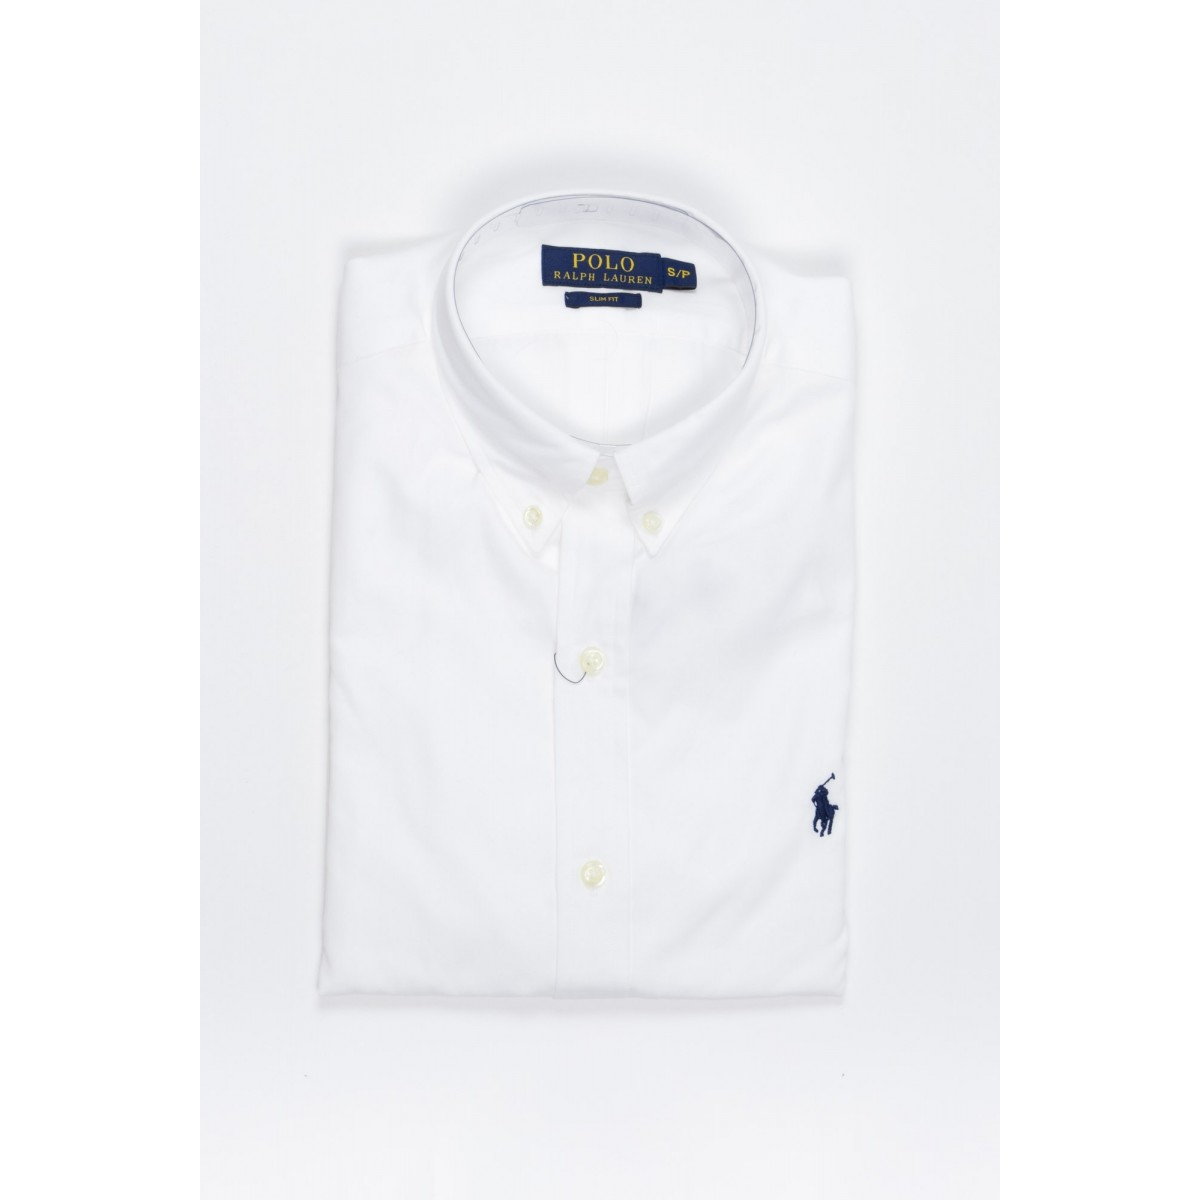 Shirt Polo Ralph Lauren Man - A04Wsl3Bc8175